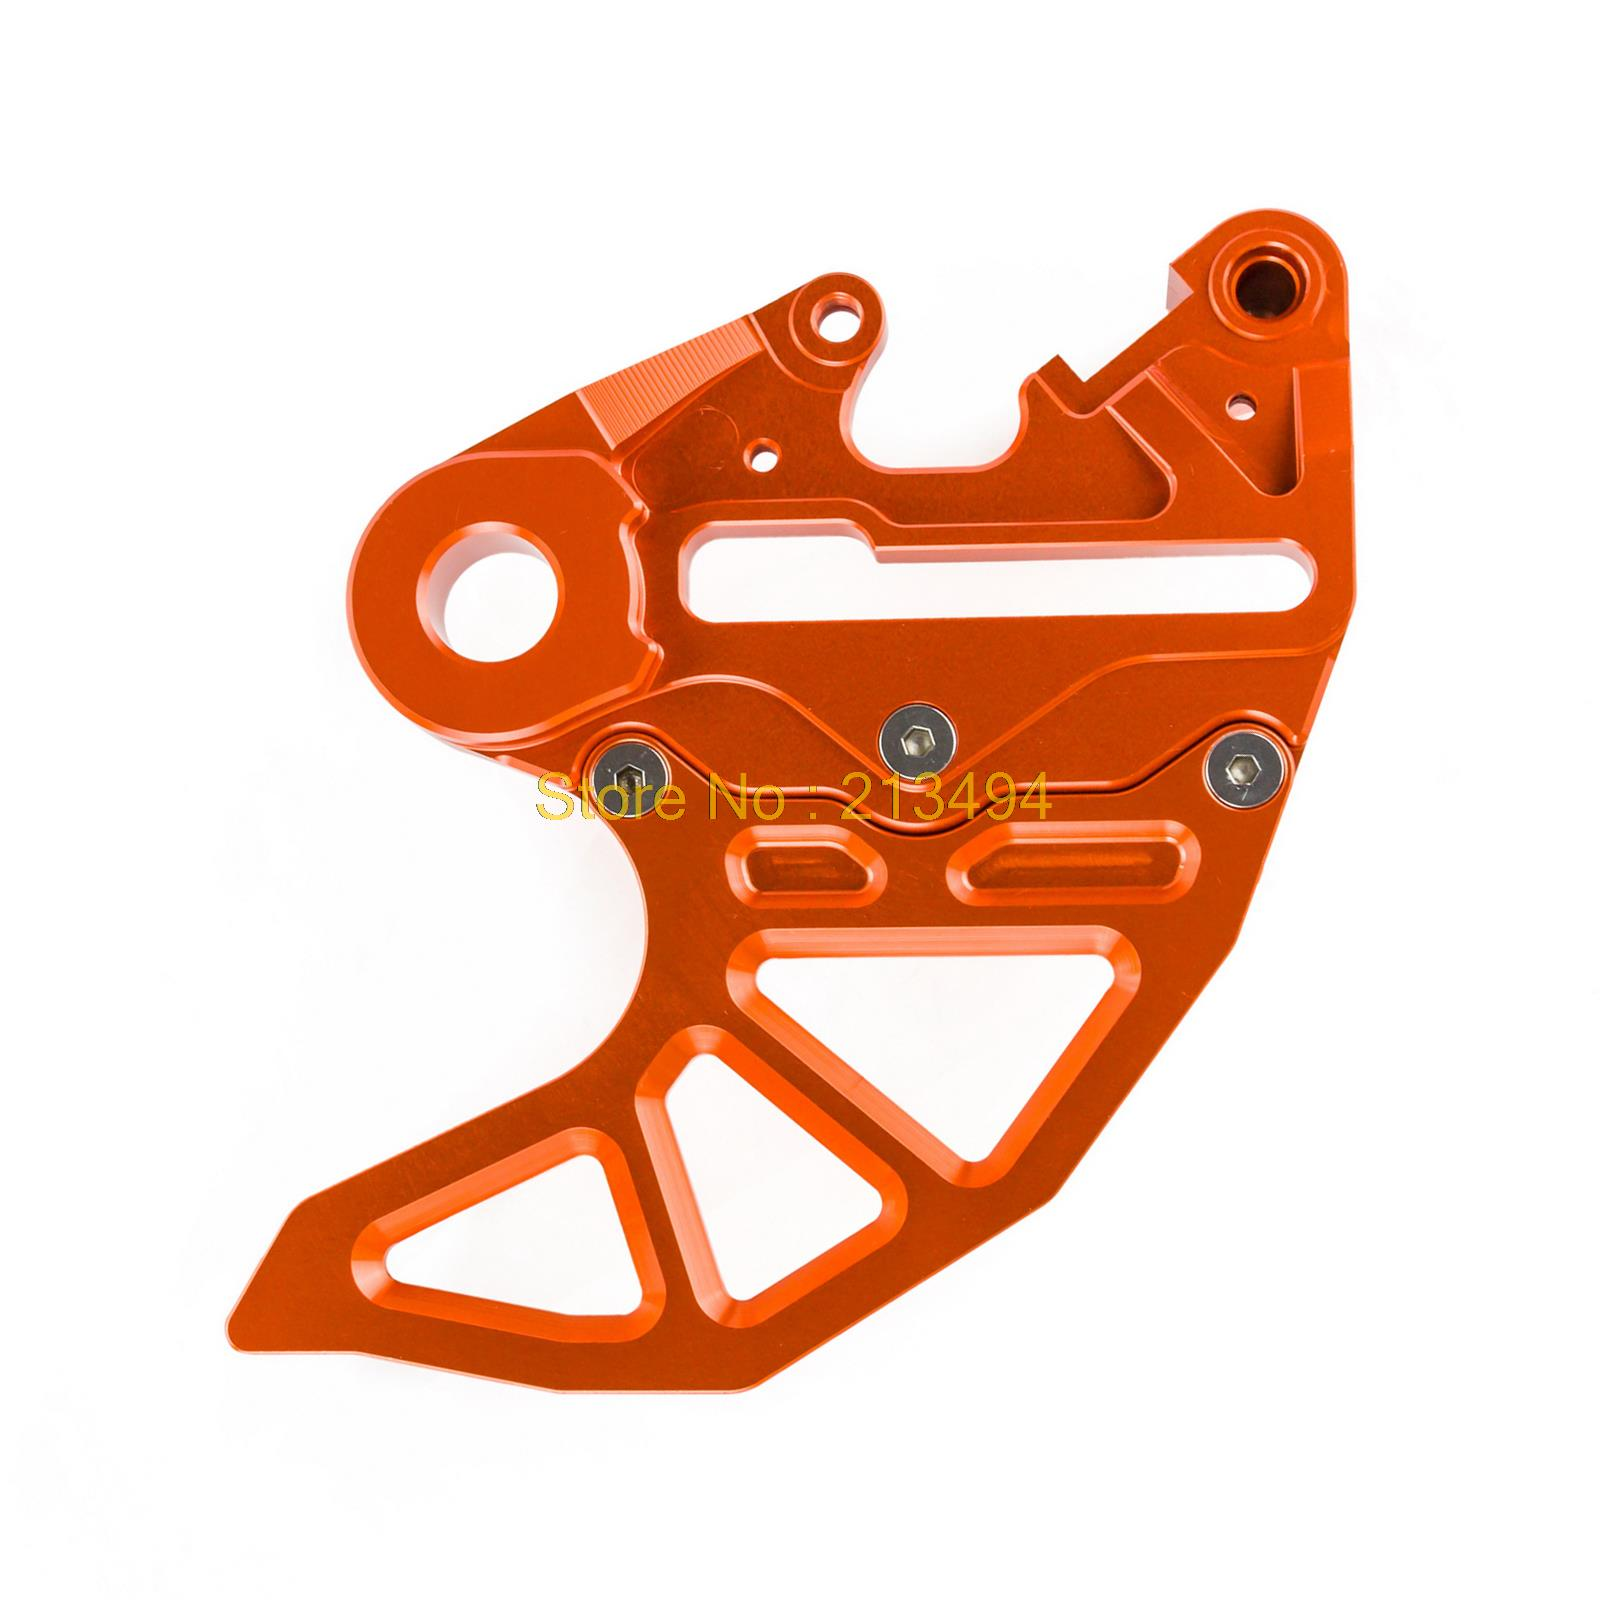 CNC Rear Brake Disc Guard & Caliper Bracket For KTM 125-450 SX/SX-F/SMR/XC 13-16 billet cnc rear brake disc guard w caliper bracket for ktm 125 450 sx sx f smr xc xc f 2013 2014 2015 2016